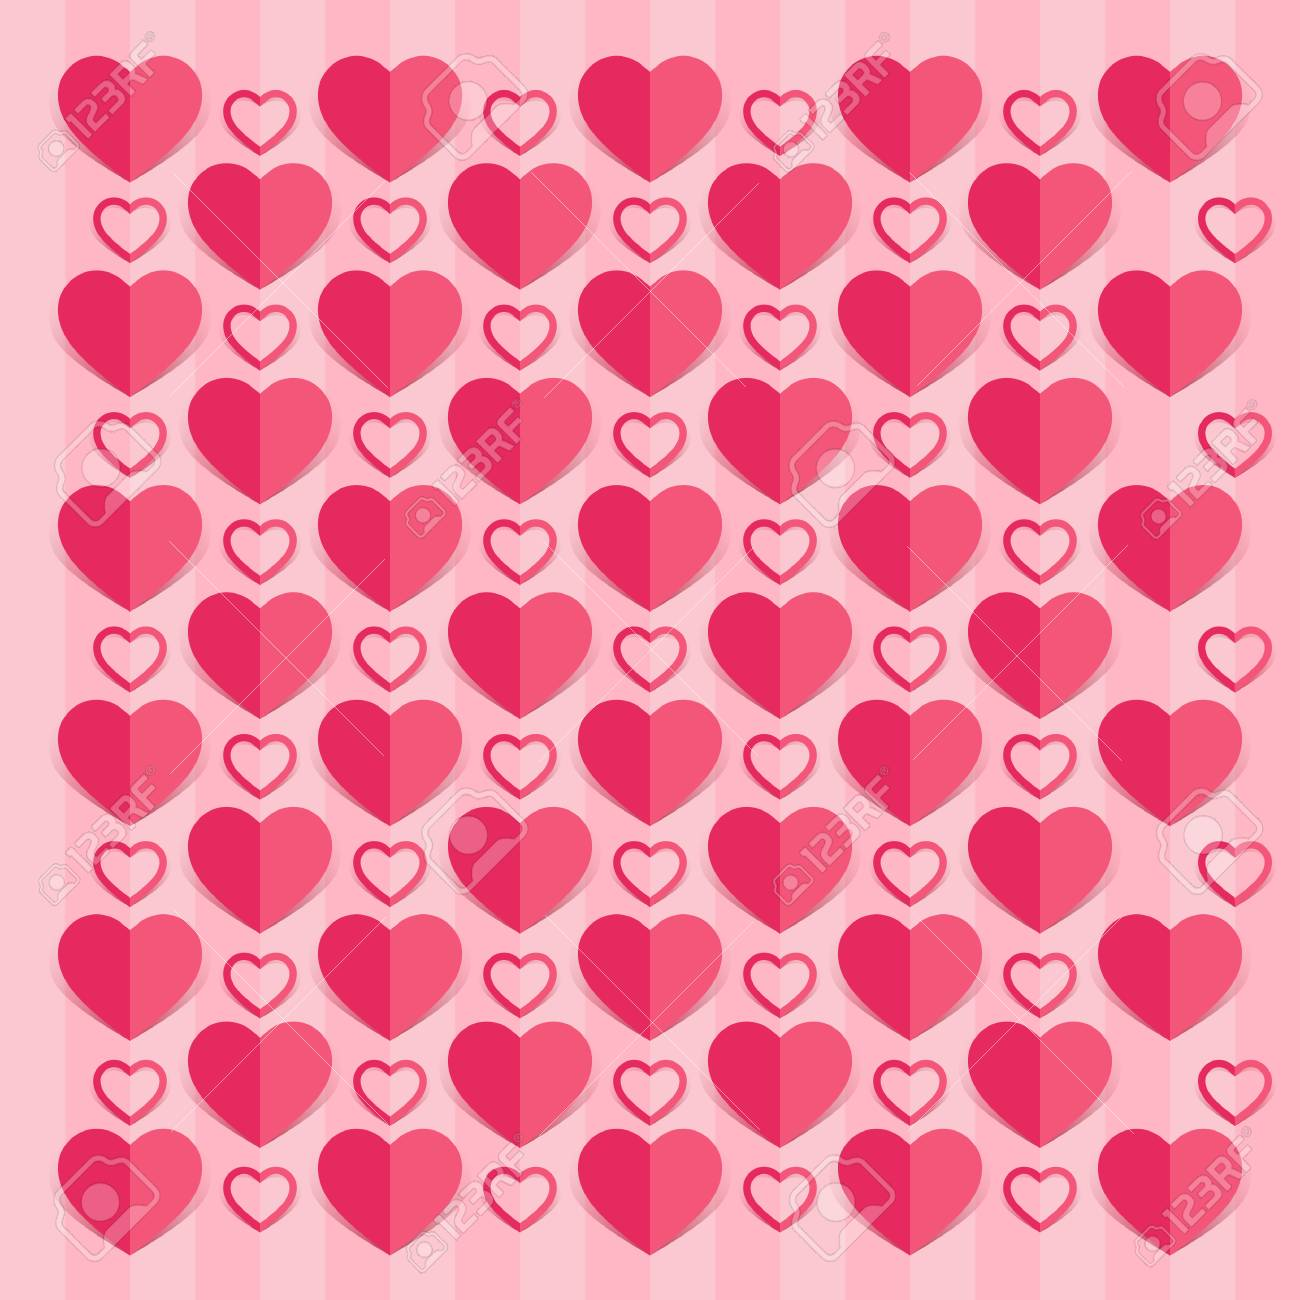 love hearts valentines day background , paper cut style royalty free